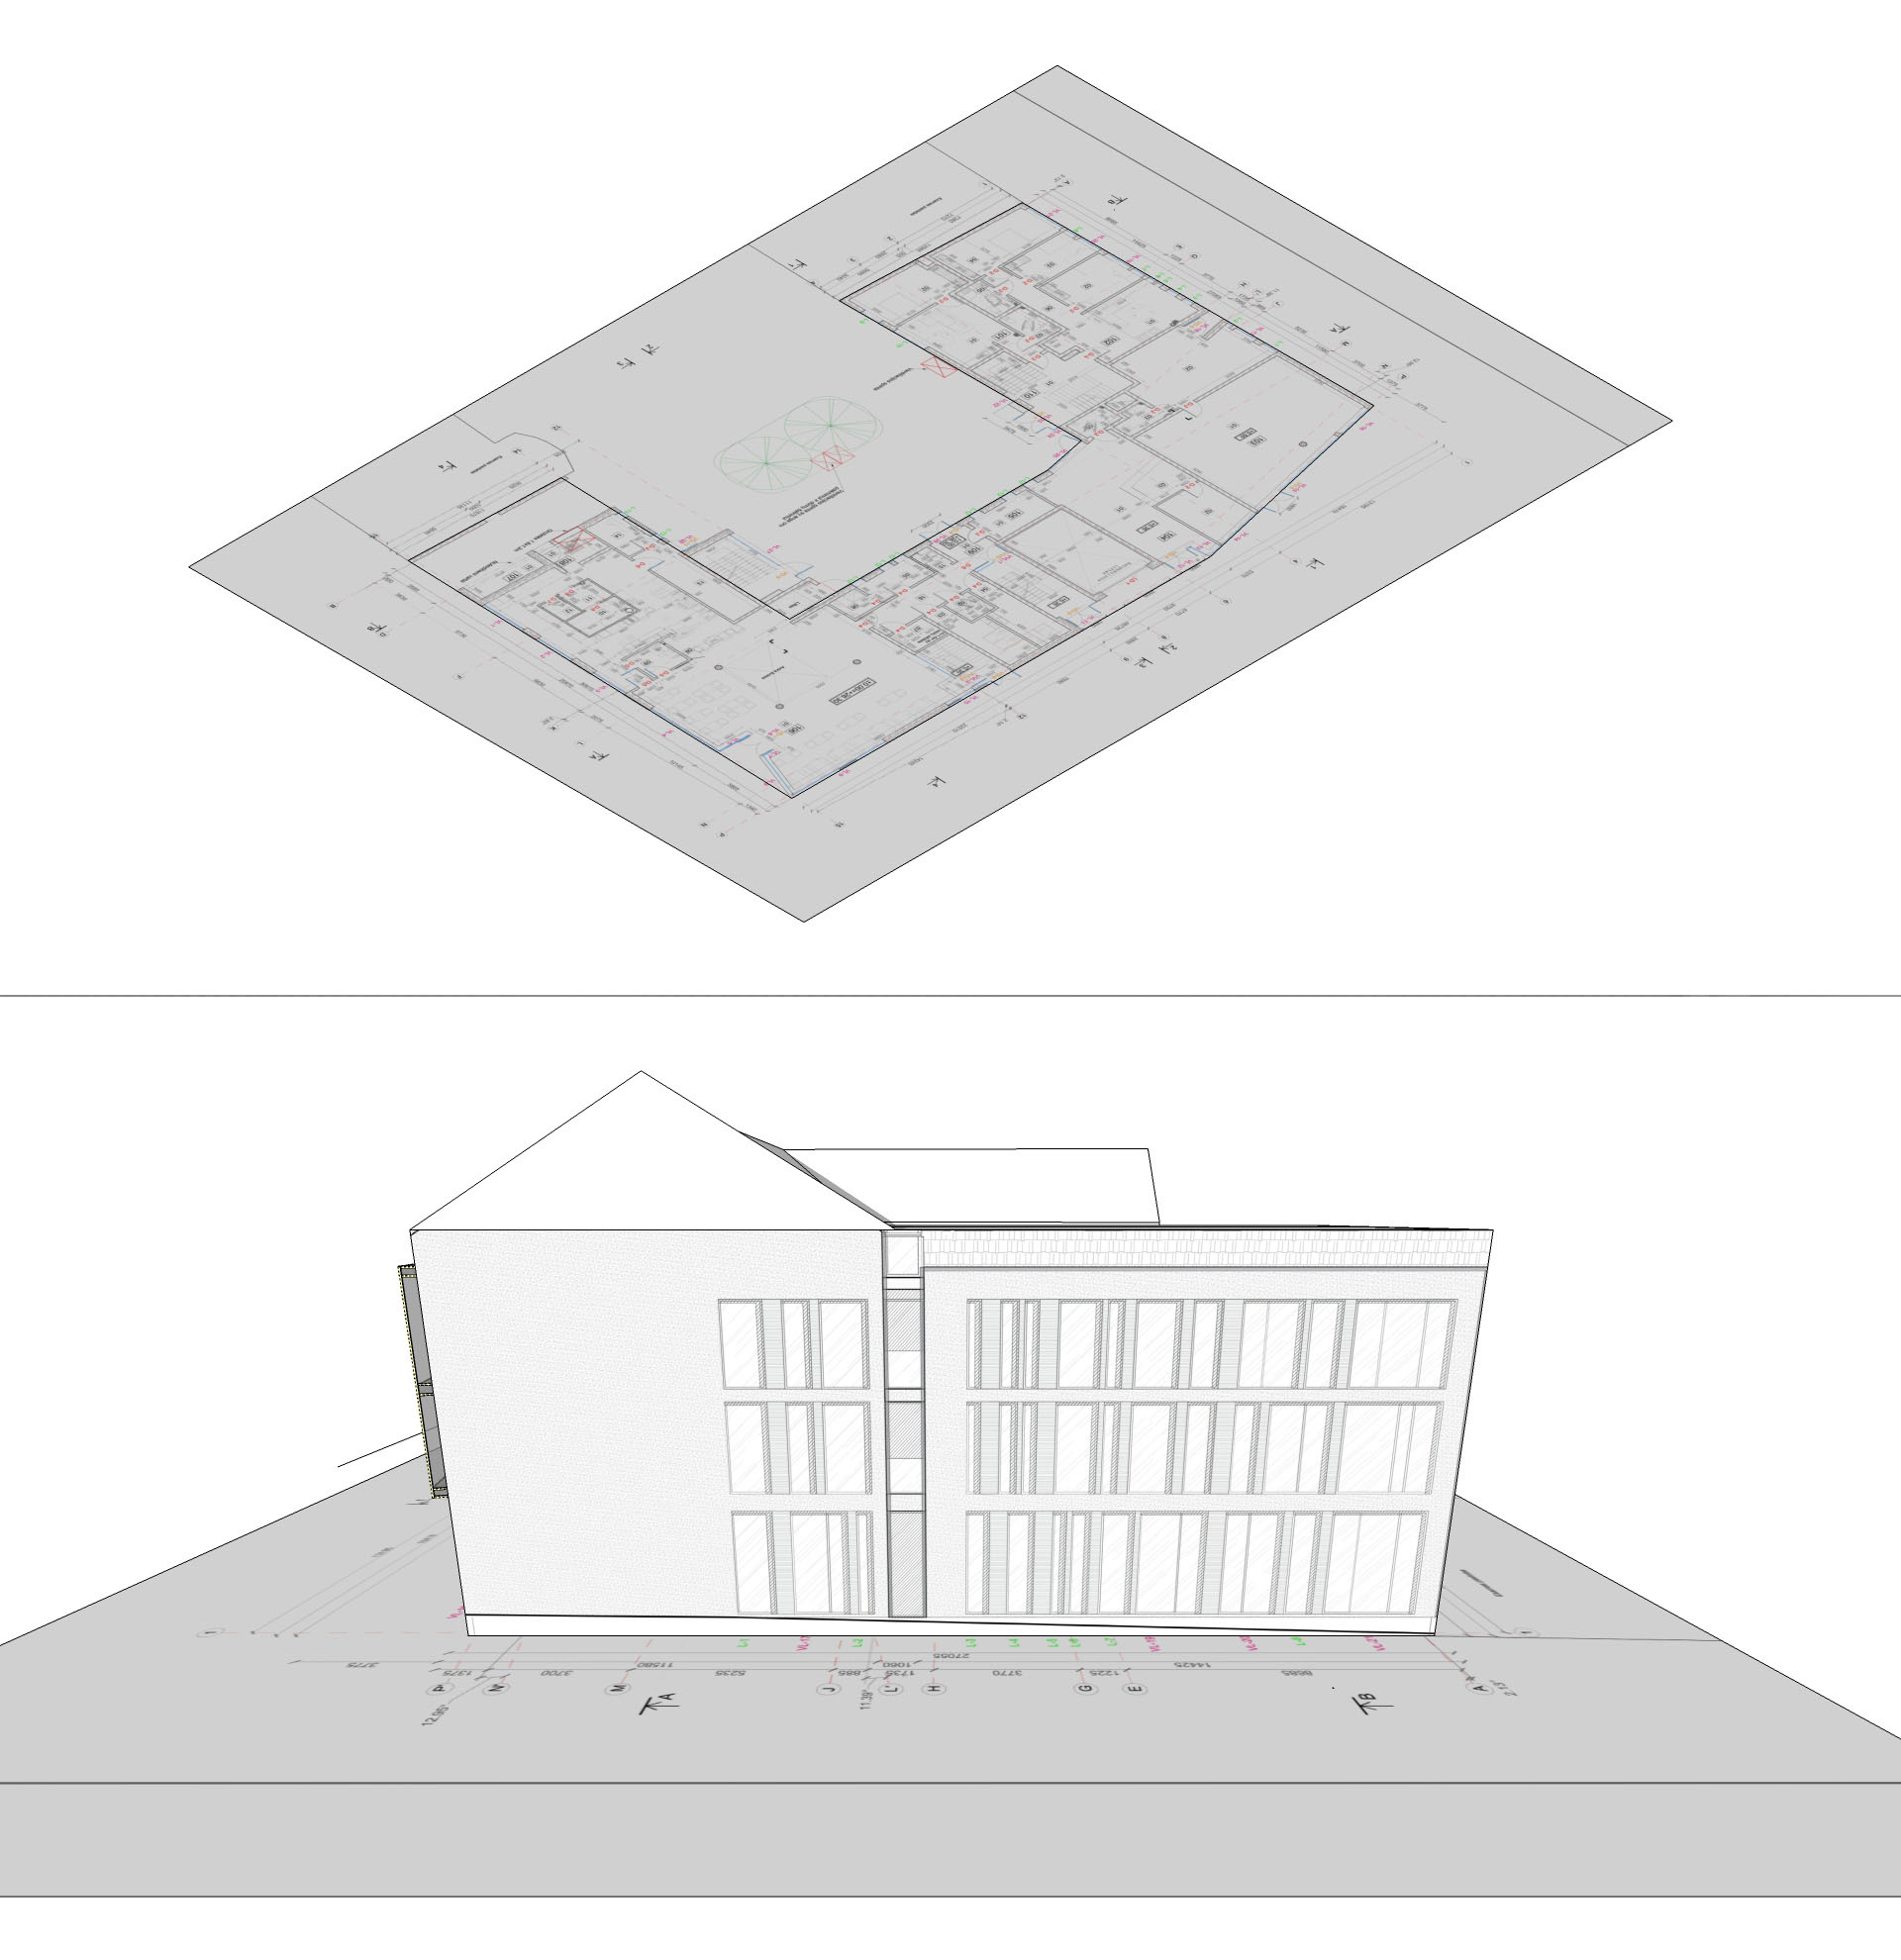 Sketchup modeling with jpg's on geometry. – 3D architect.